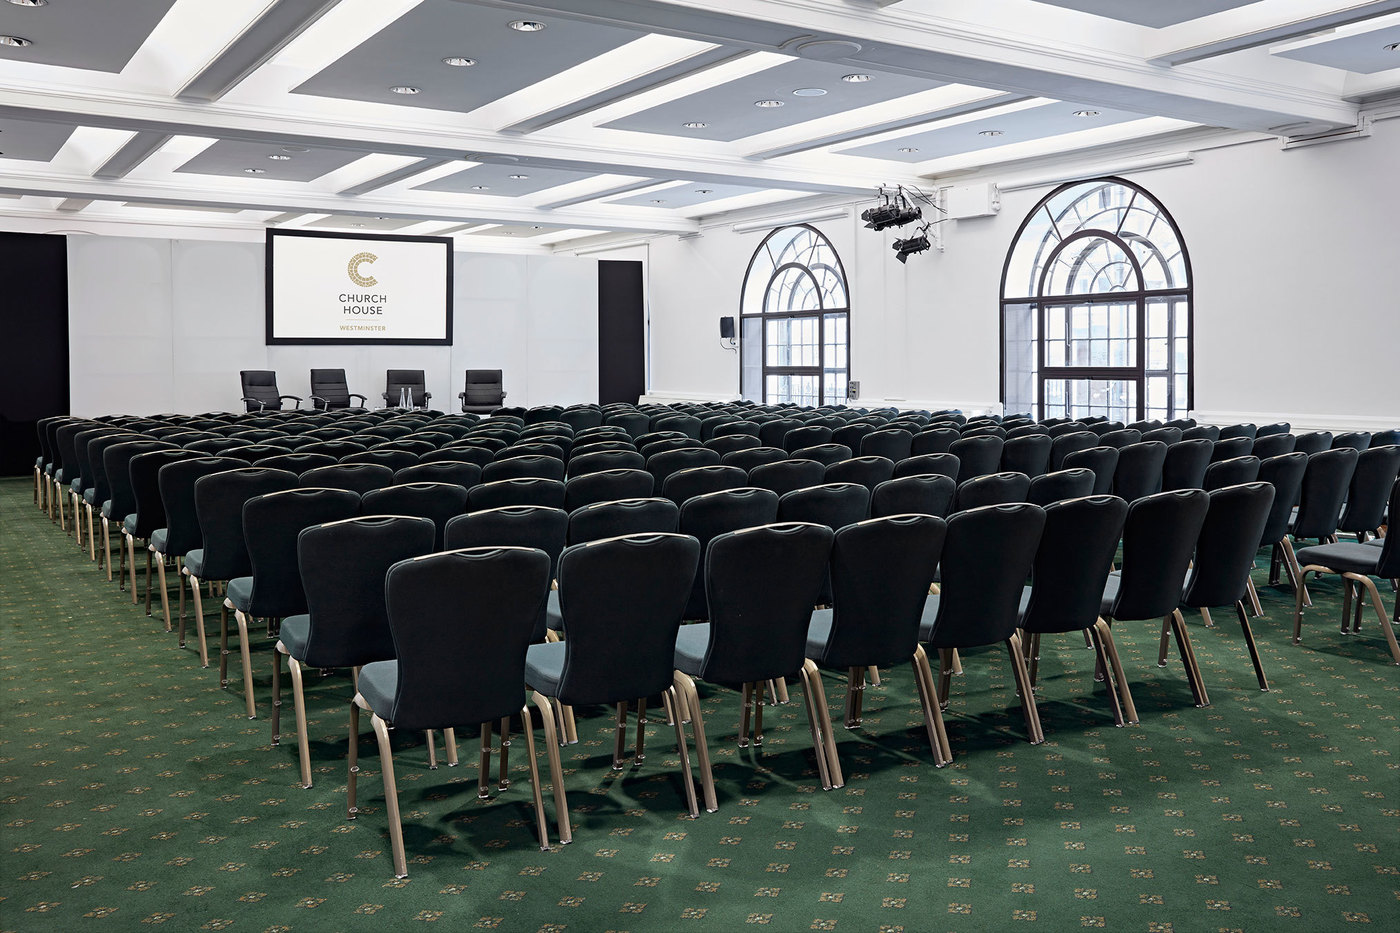 X large 1511958522 1506689073 harvey goodwin suite   theatre style  side angle   2  header church house conference centre london